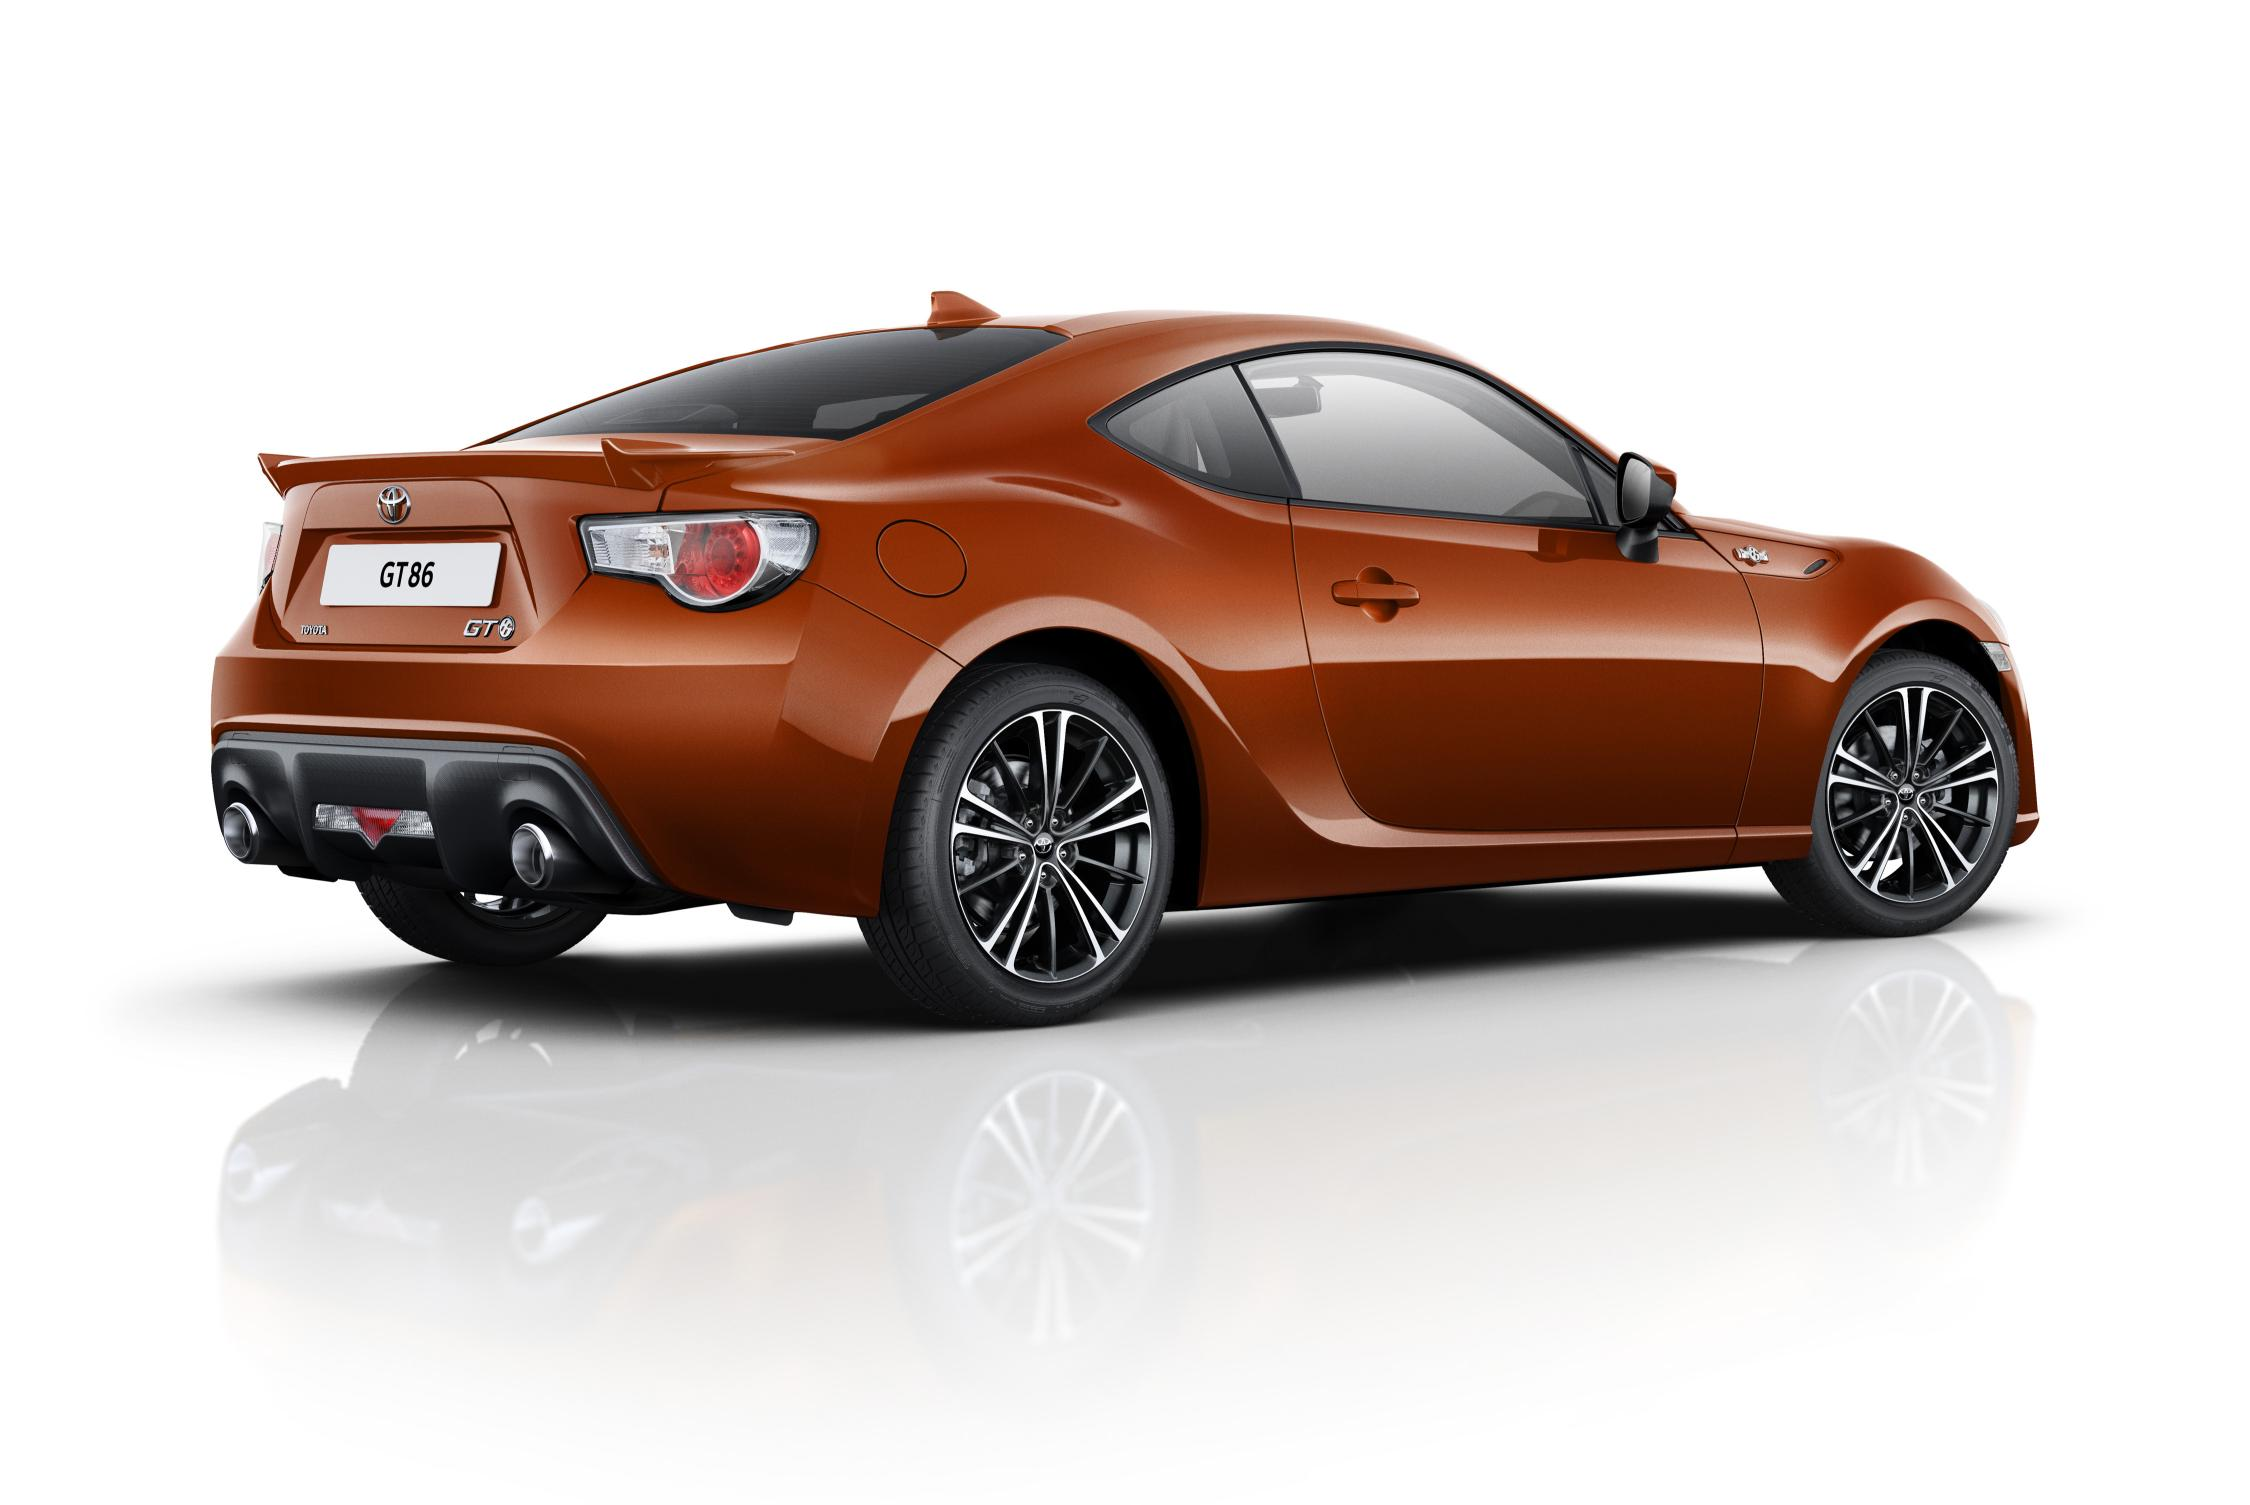 2015 toyota gt 86 gets price cut in the uk via new entry level trim autoevolution. Black Bedroom Furniture Sets. Home Design Ideas